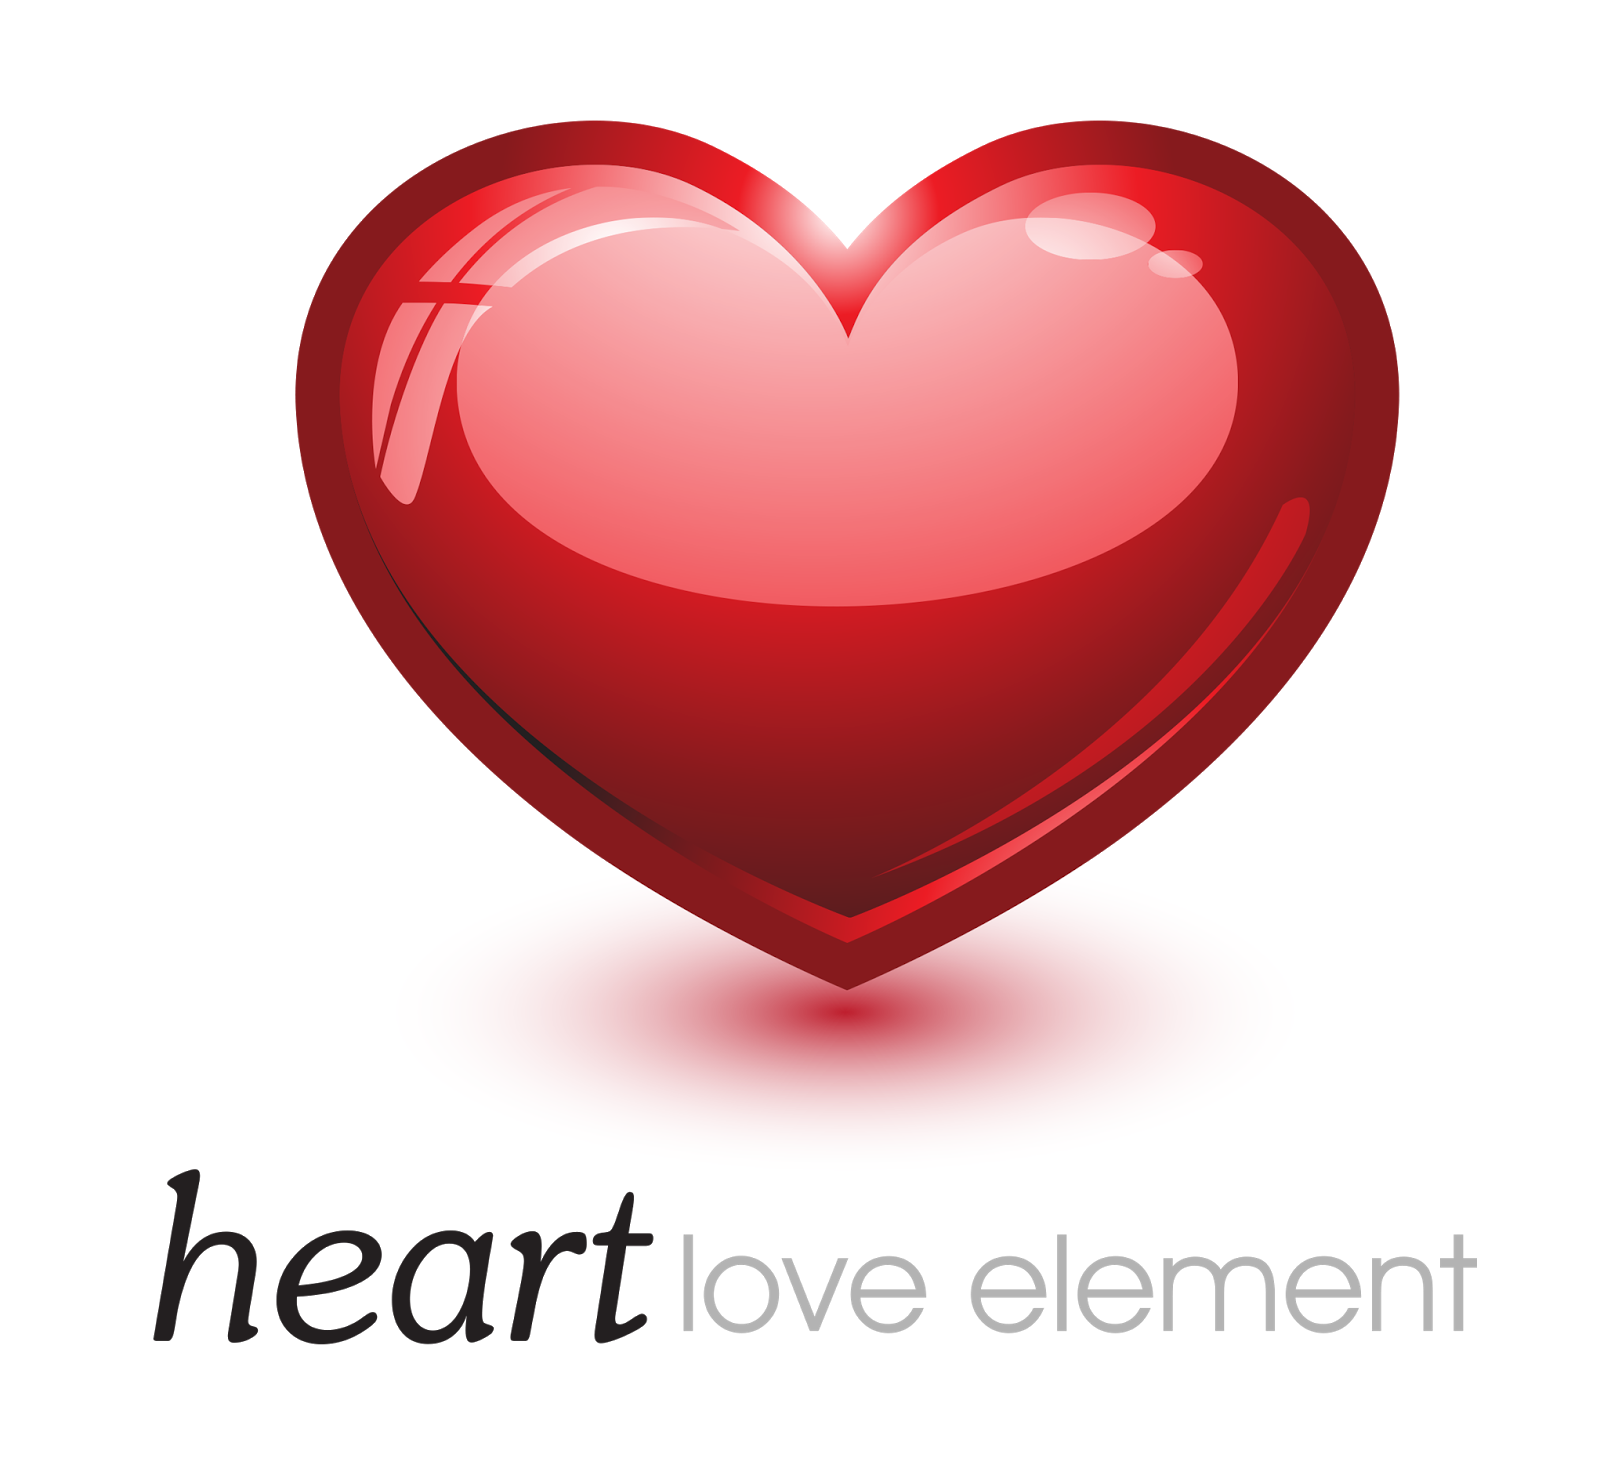 Love transparent hd photo. 3d heart png image free library